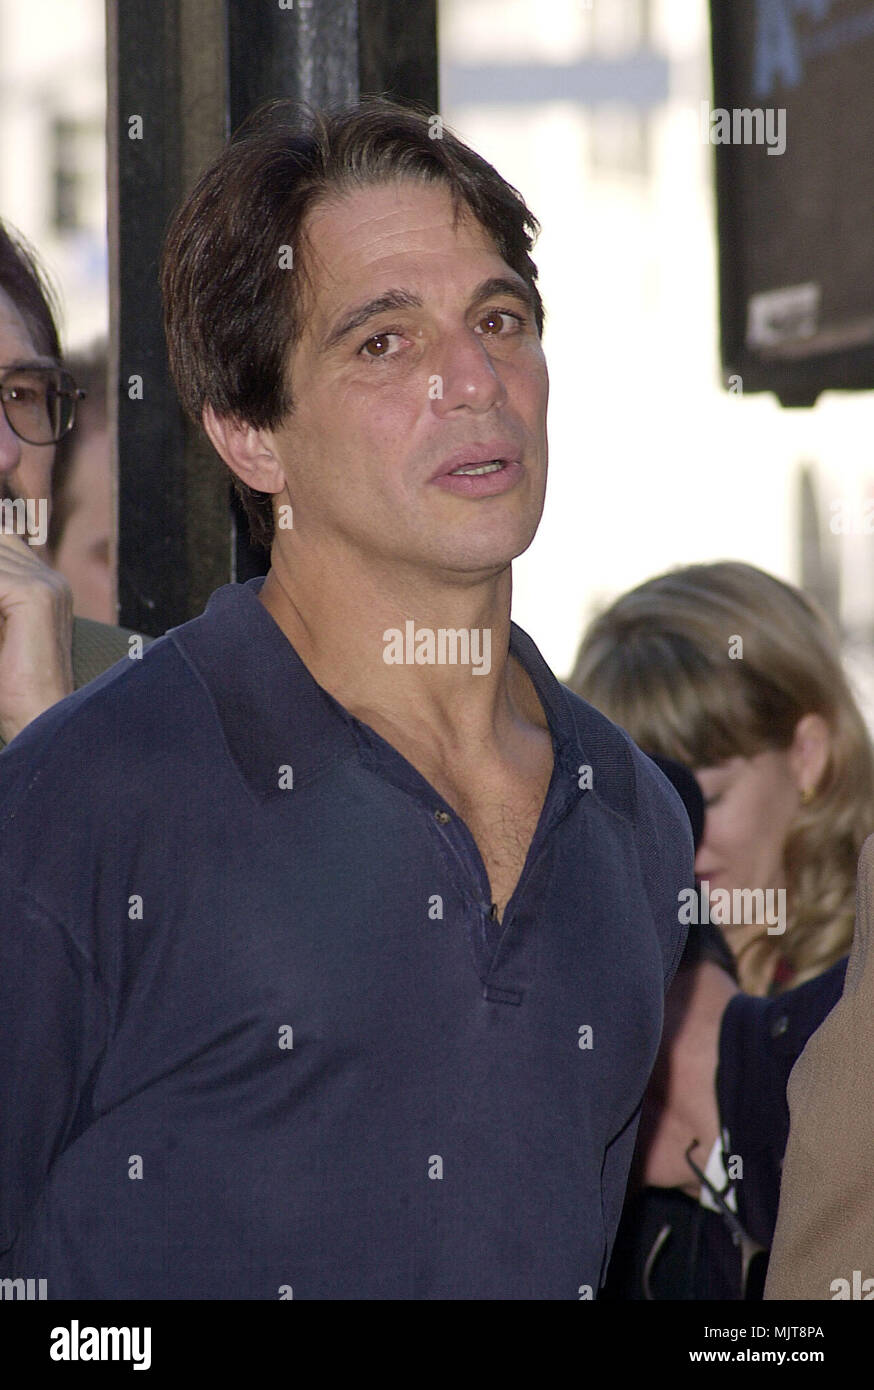 Tony Danza Stockfotos & Tony Danza Bilder - Seite 3 - Alamy